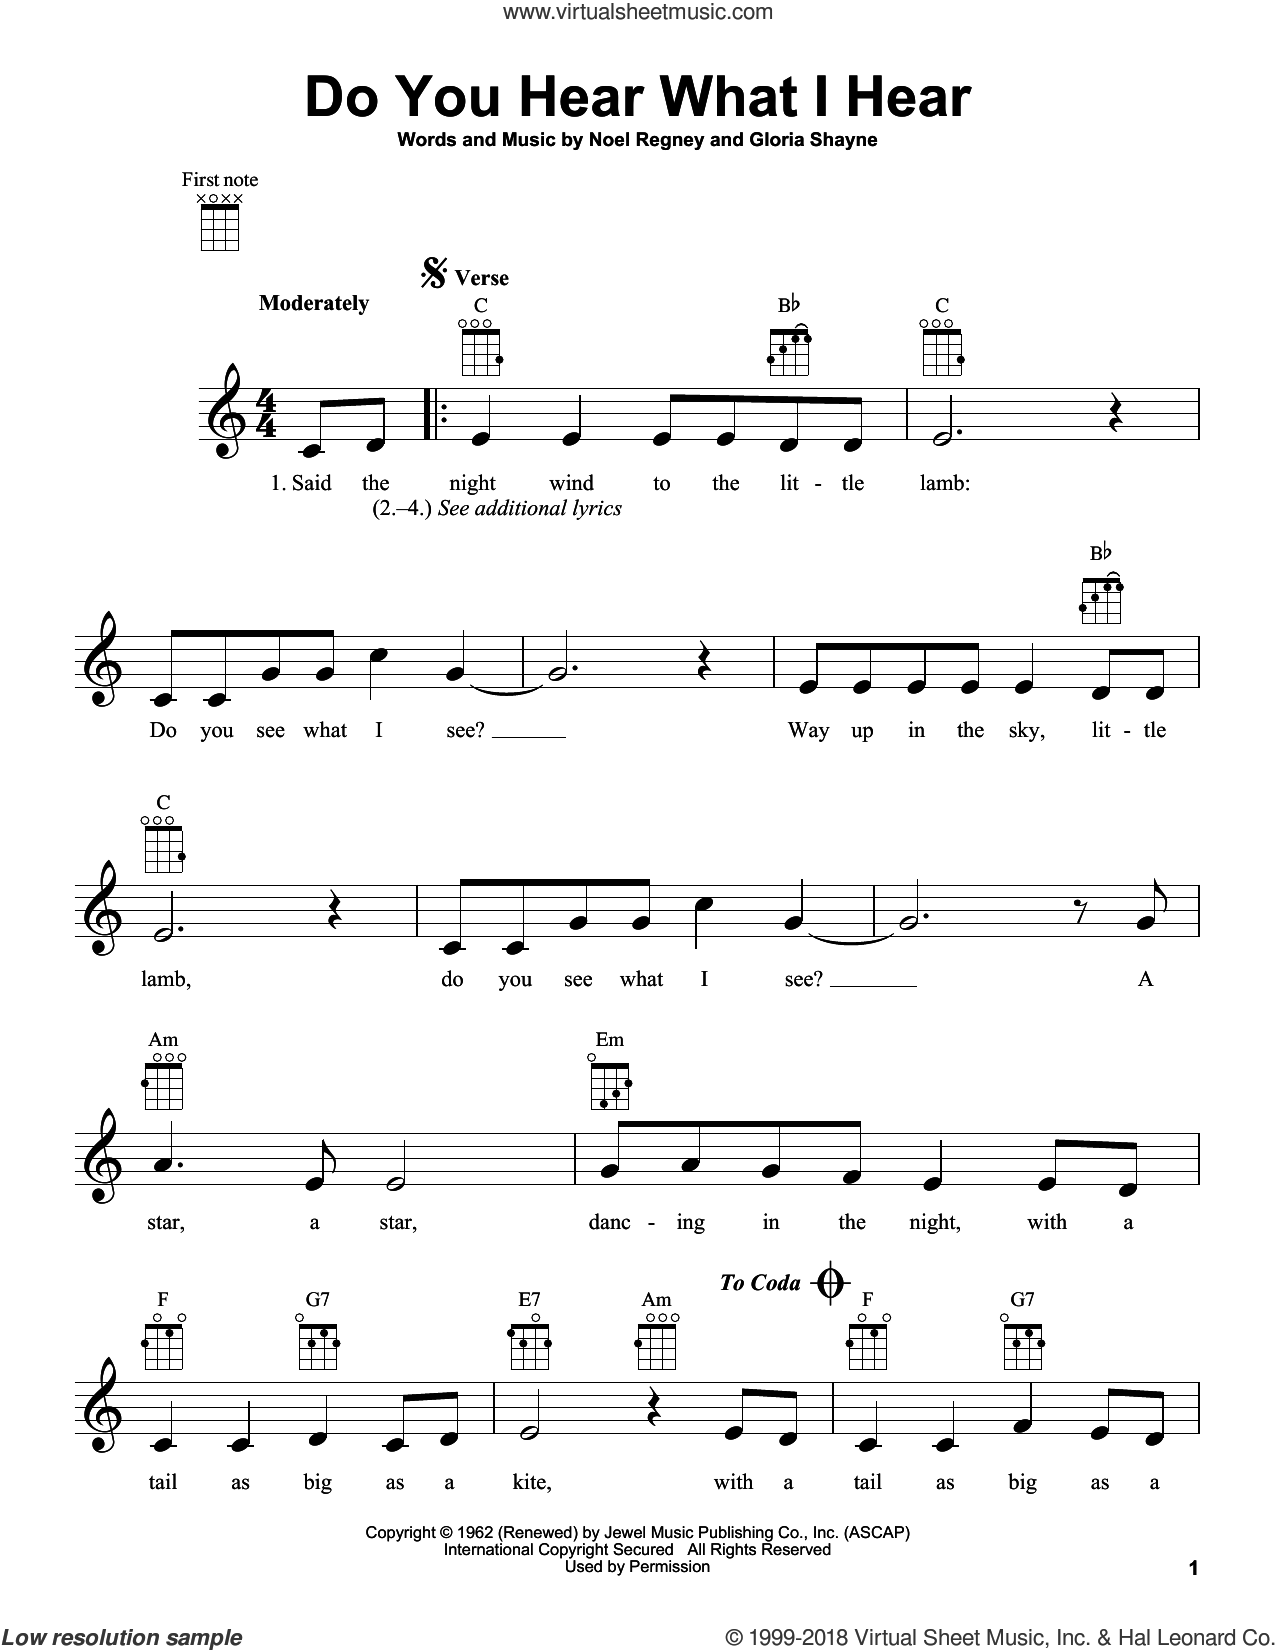 Do You Hear What I Hear sheet music for ukulele by Gloria Shayne, Carole King, Carrie Underwood and Noel Regney, intermediate skill level